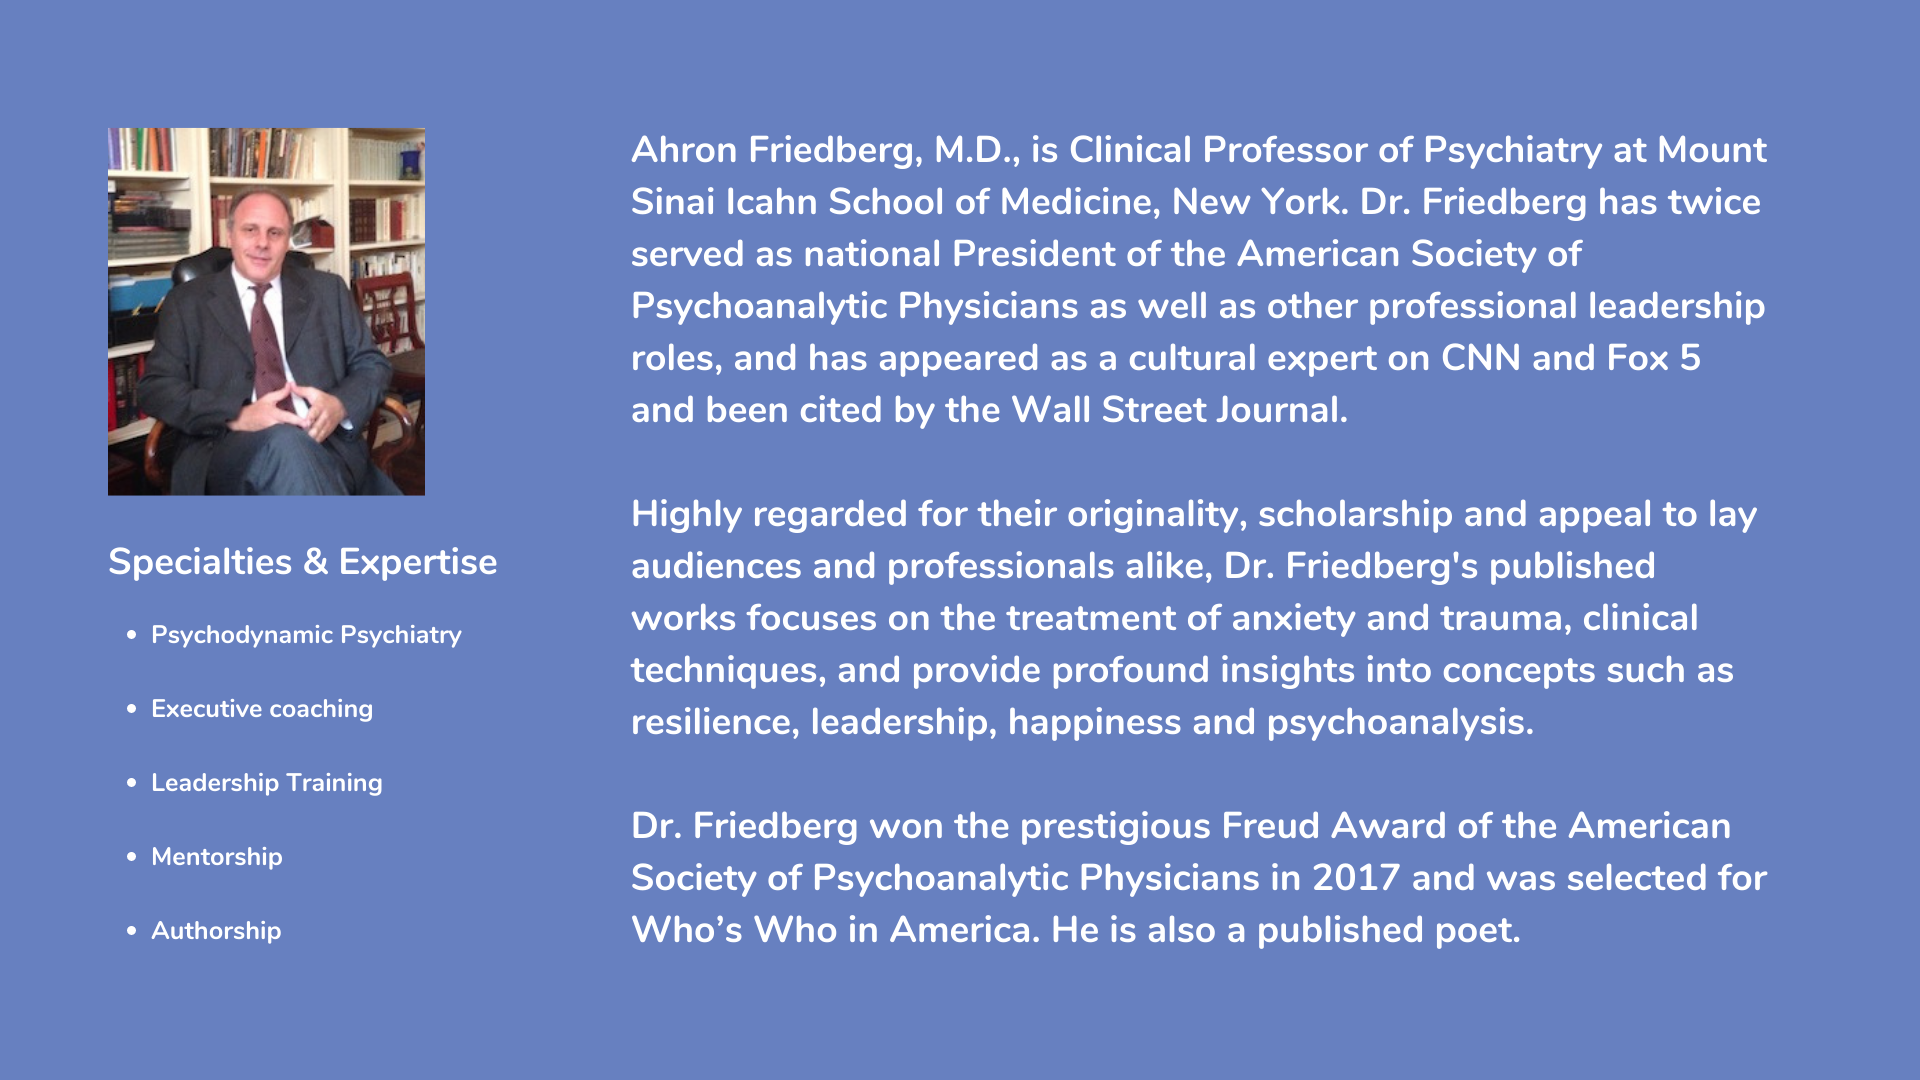 Photo of and information about, acclaimed author, keynote speaker and psychoanalyst, Ahron Friedberg, M.D.